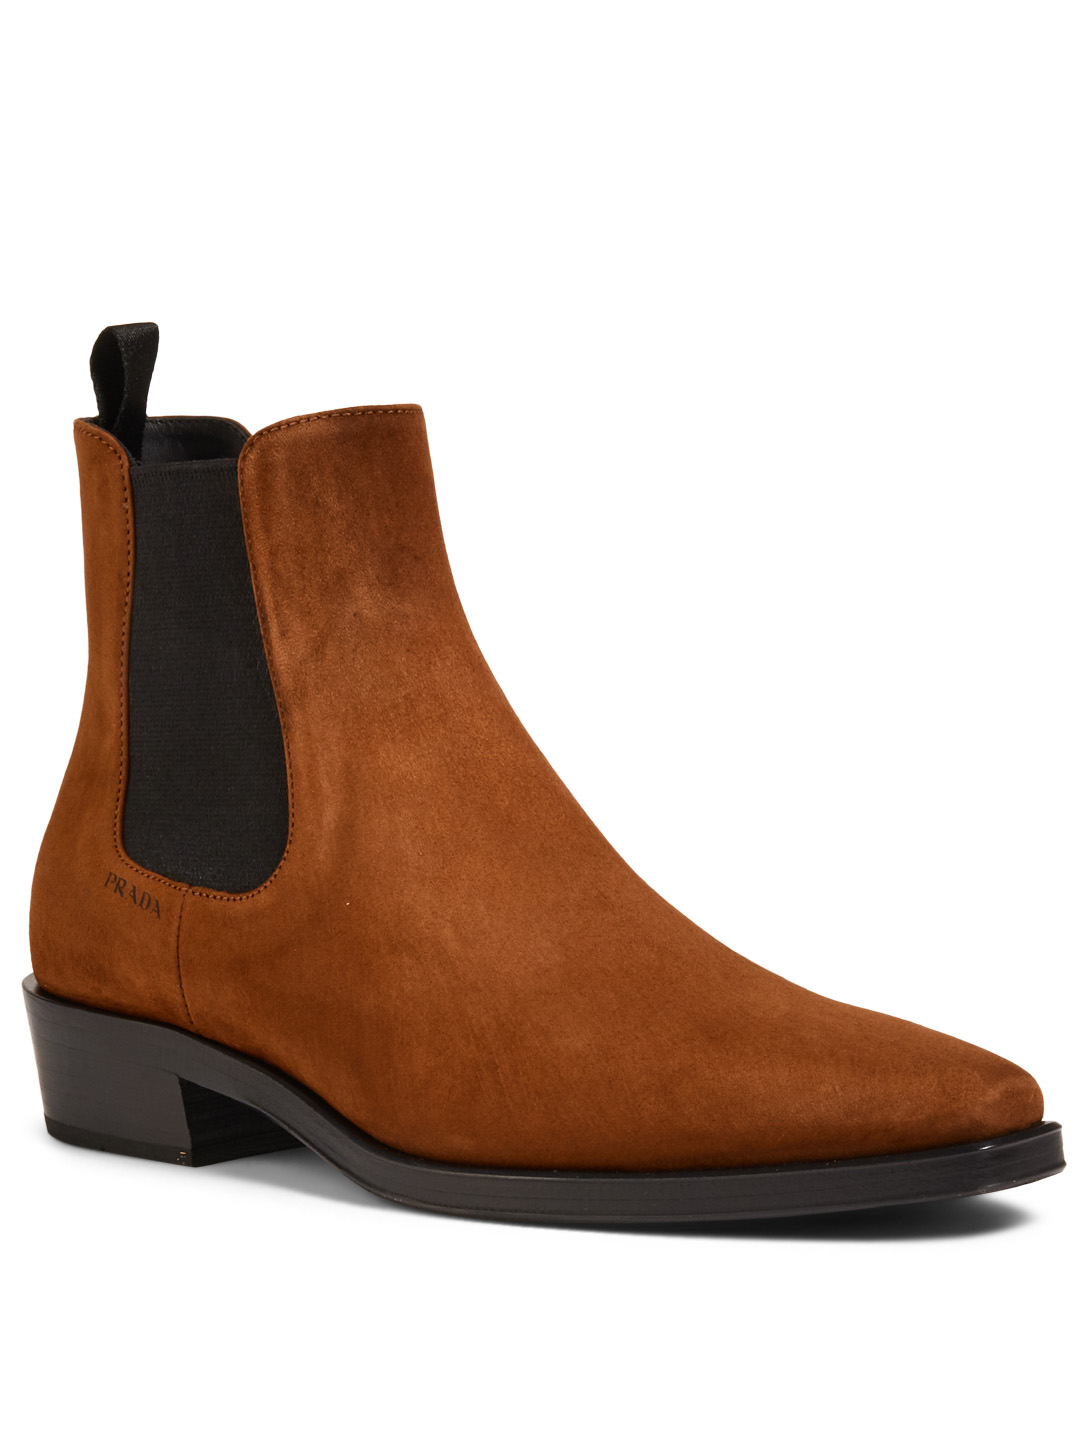 ... PRADA Classic Suede Chelsea Boots Womens Brown ... 4f21556243